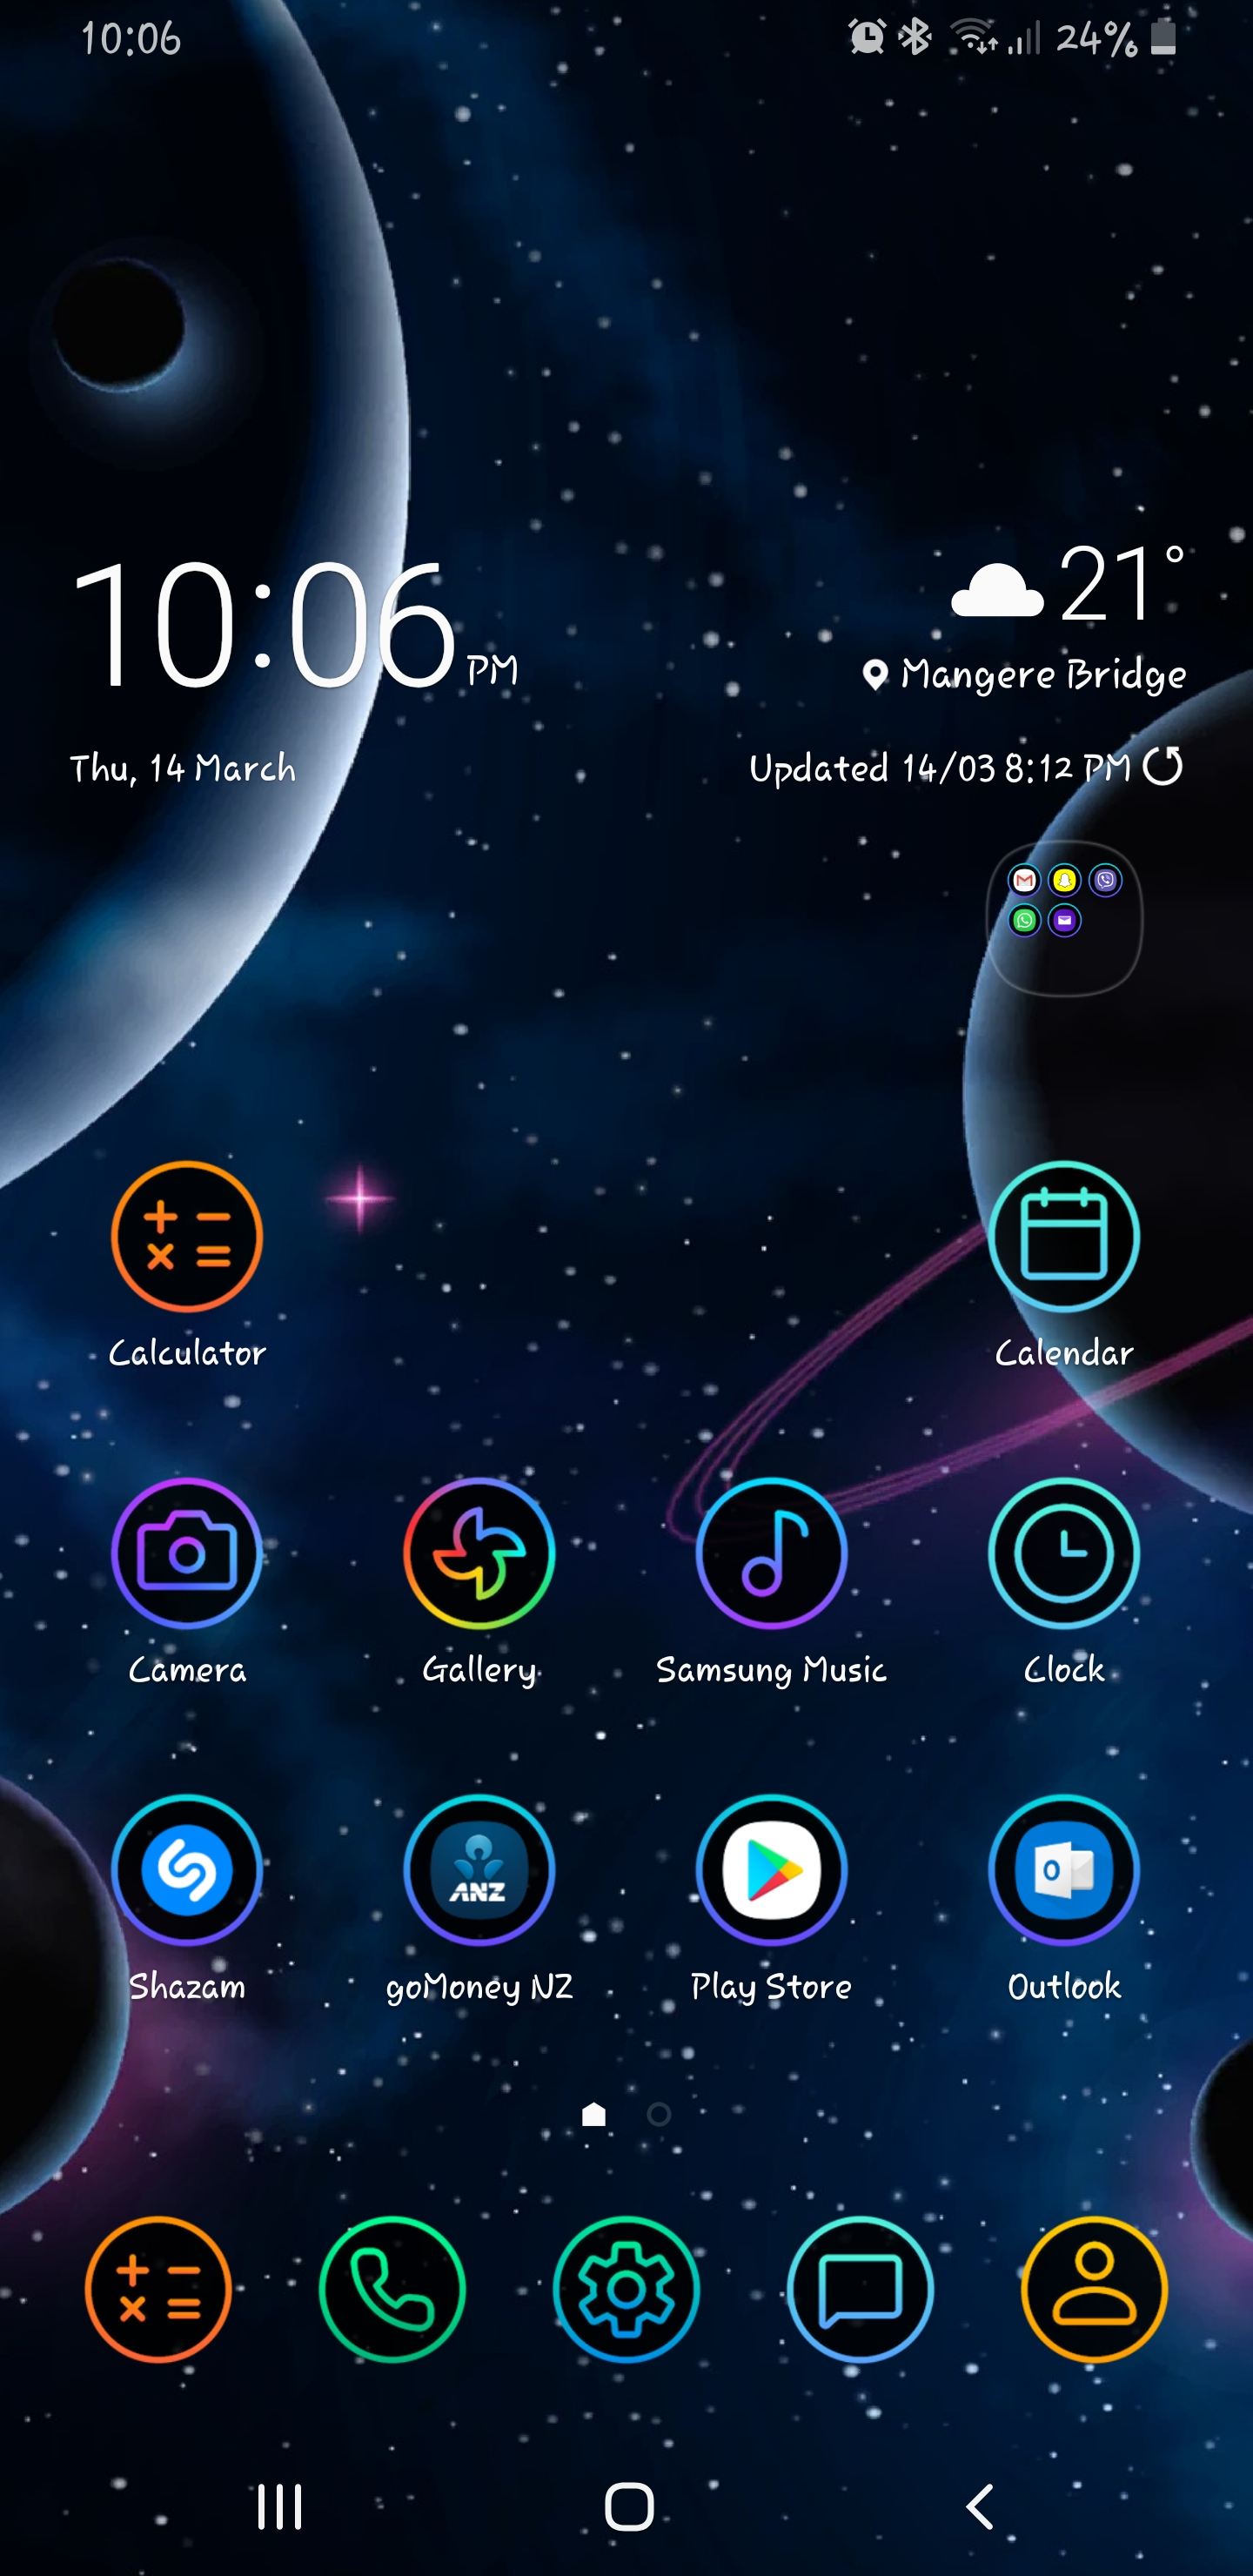 S9 Pie Upgrade Hate The New Look Samsung Community